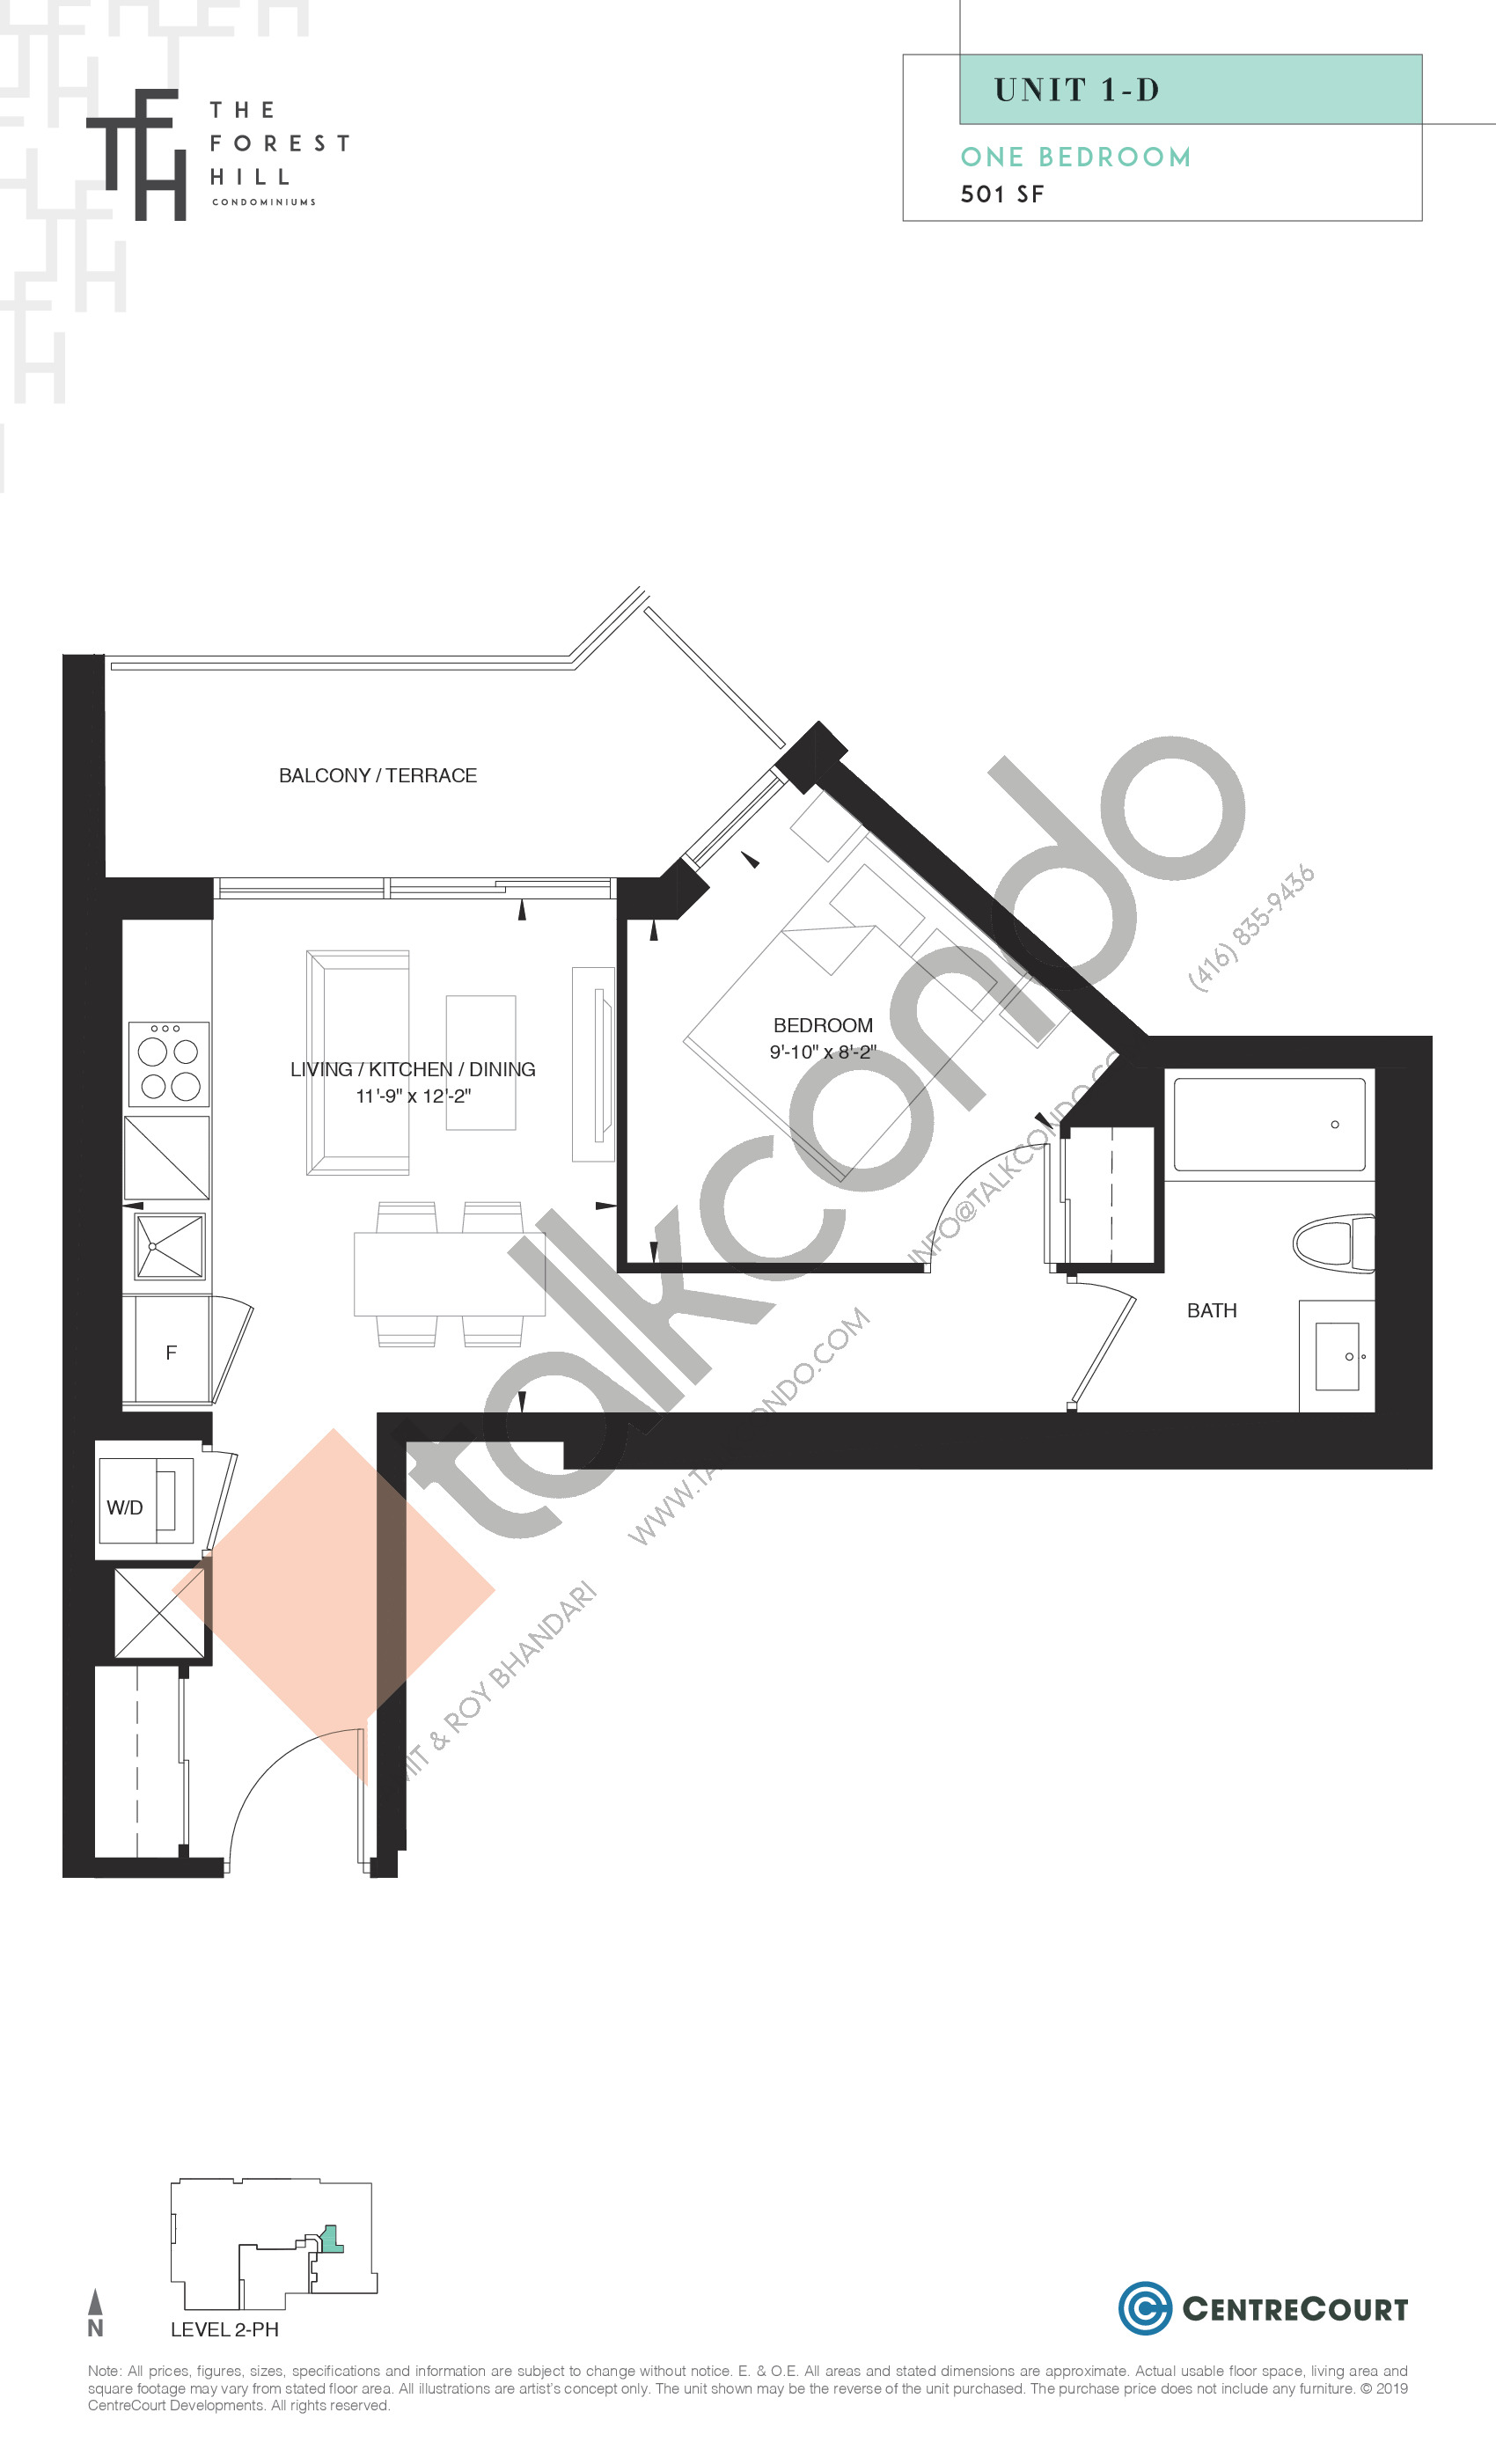 Unit 1-D Floor Plan at The Forest Hill Condos - 501 sq.ft